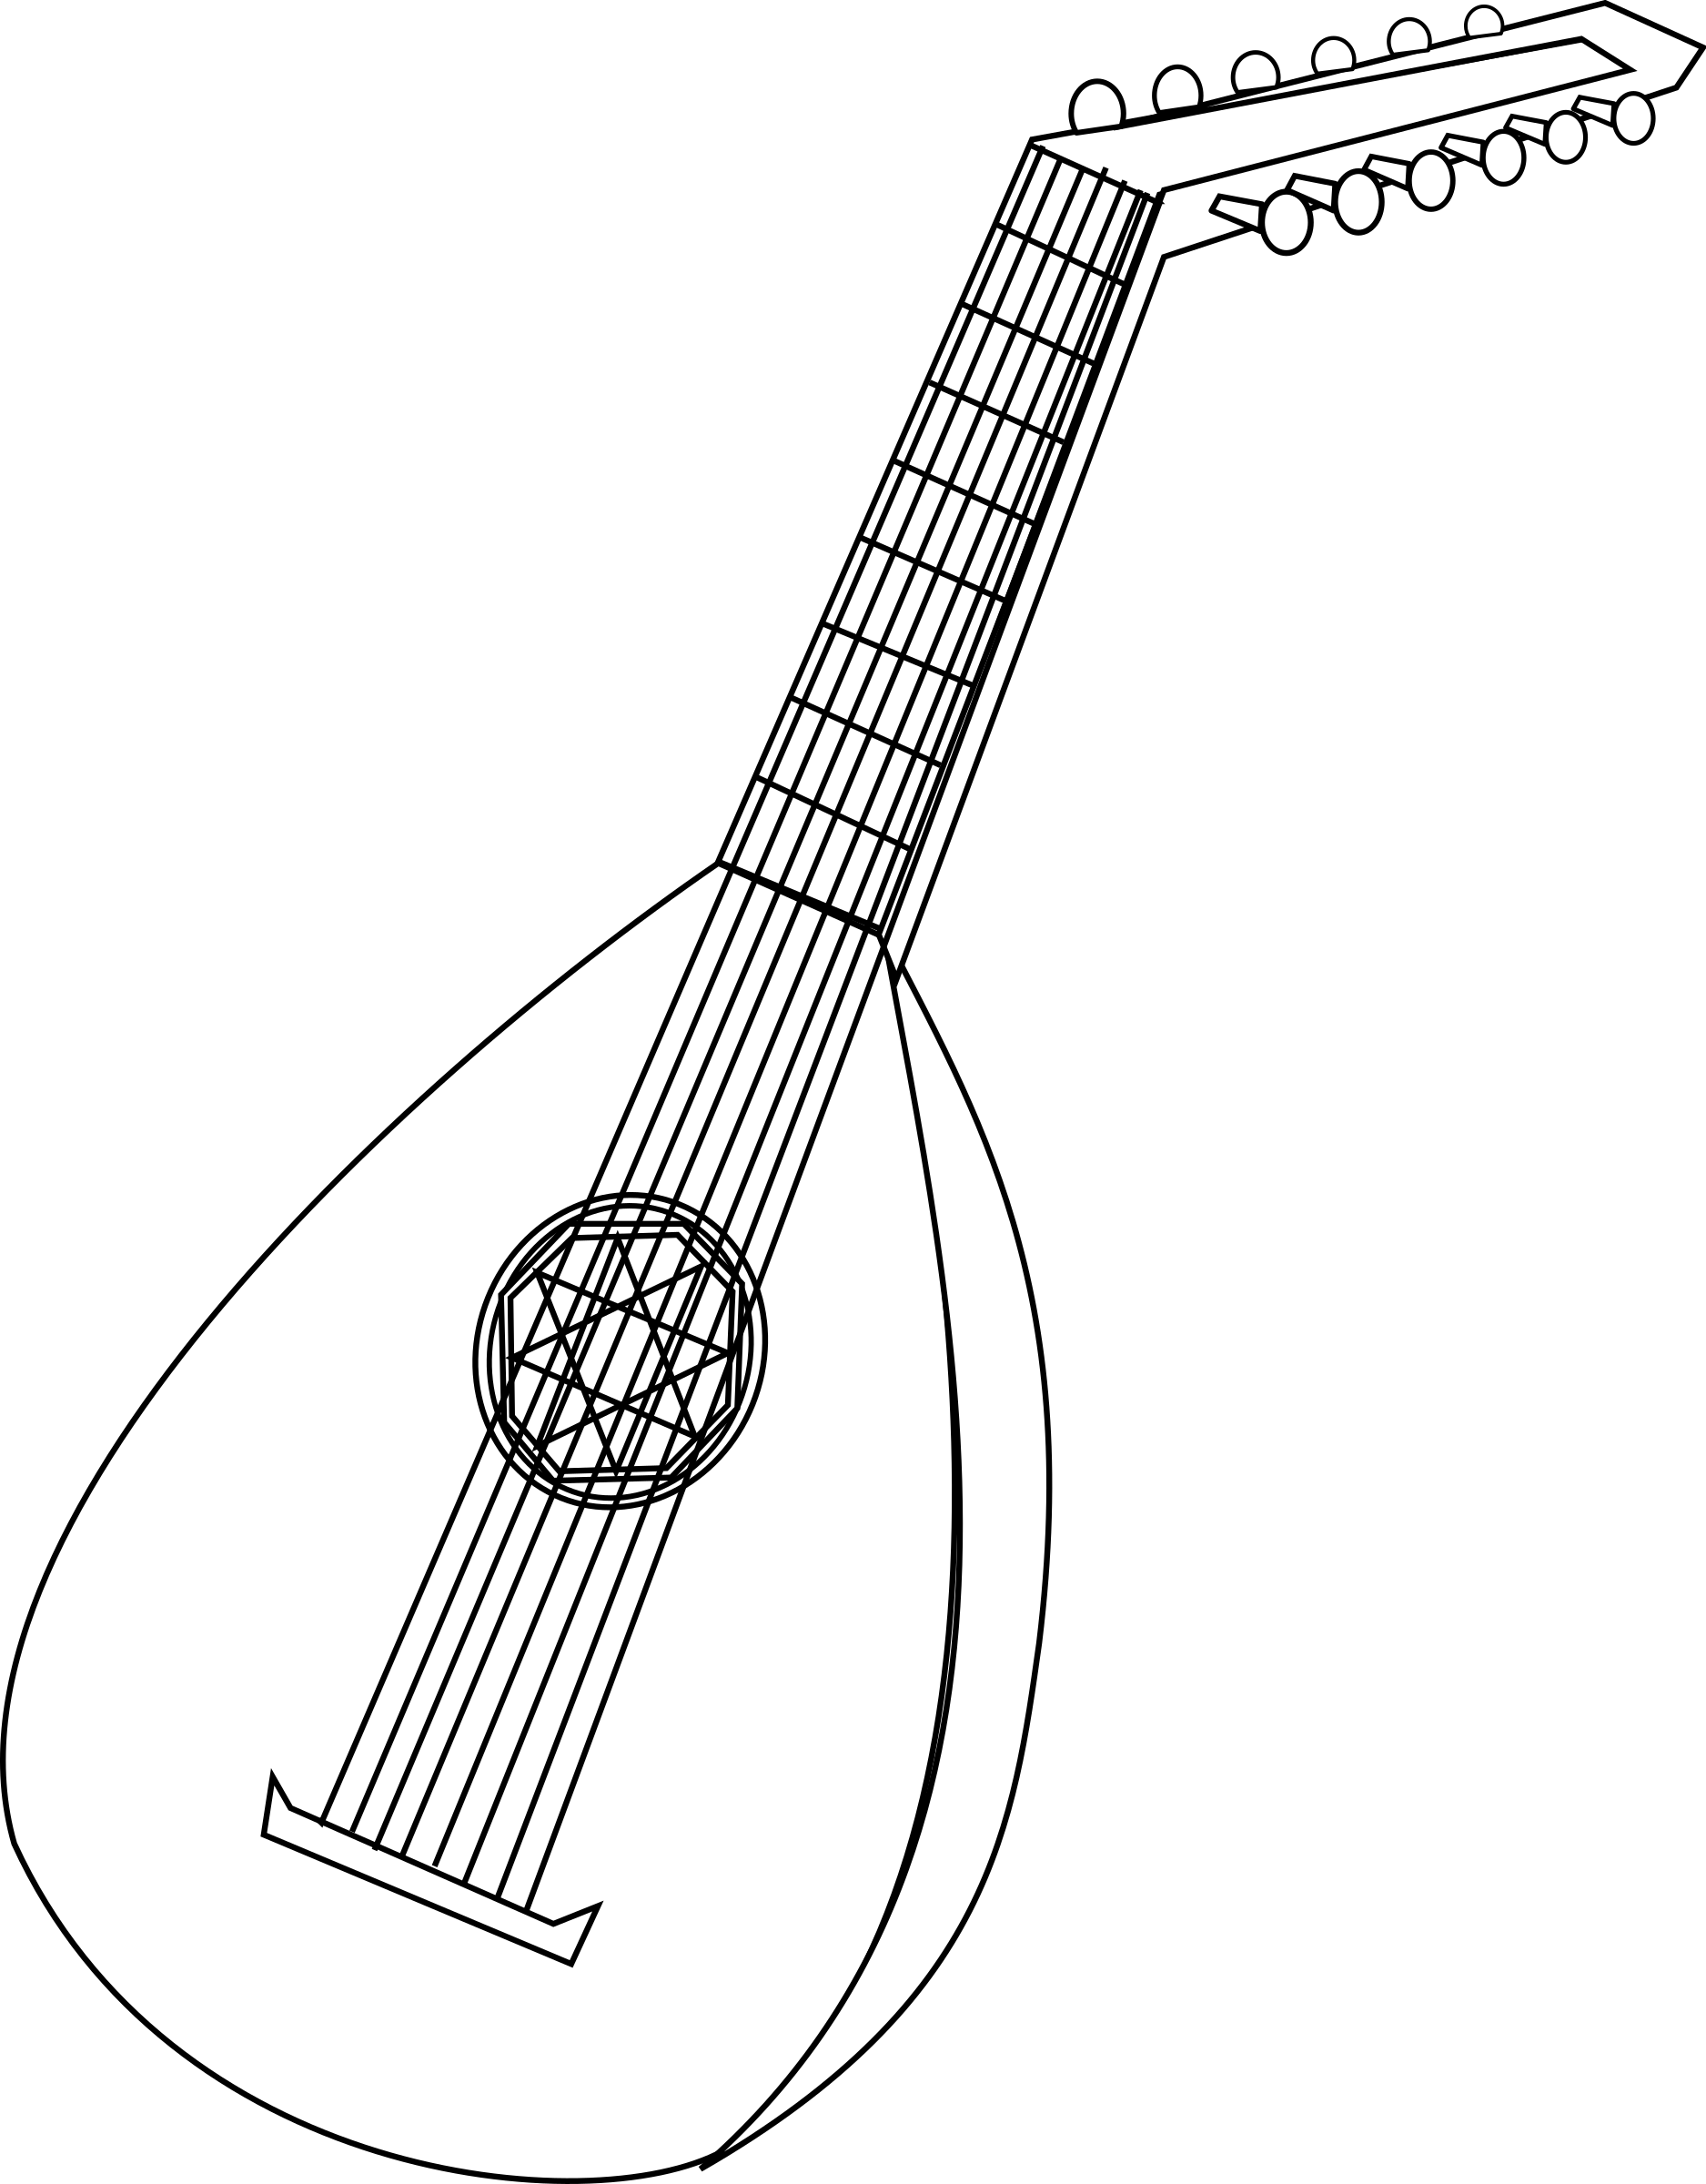 Lute clipart #13, Download drawings